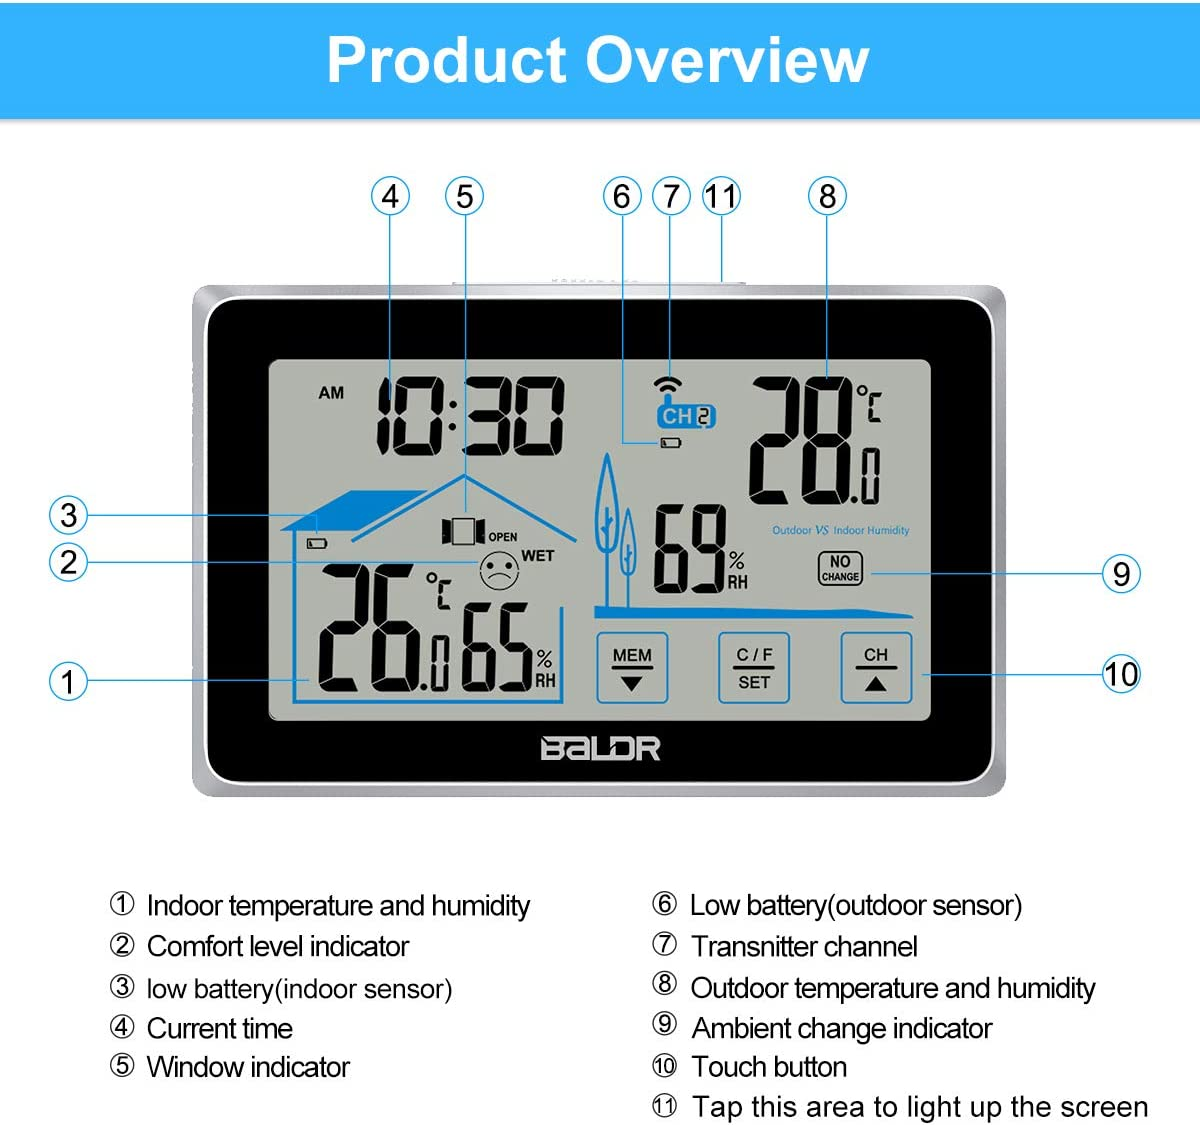 Wireless Weather Monitoring Digital LCD Touchscreen Clocks with Backlight Display/… Qomolo Weather Station Indoor Hygrometer Thermometer with Outdoor Temperature Humidity Sensor